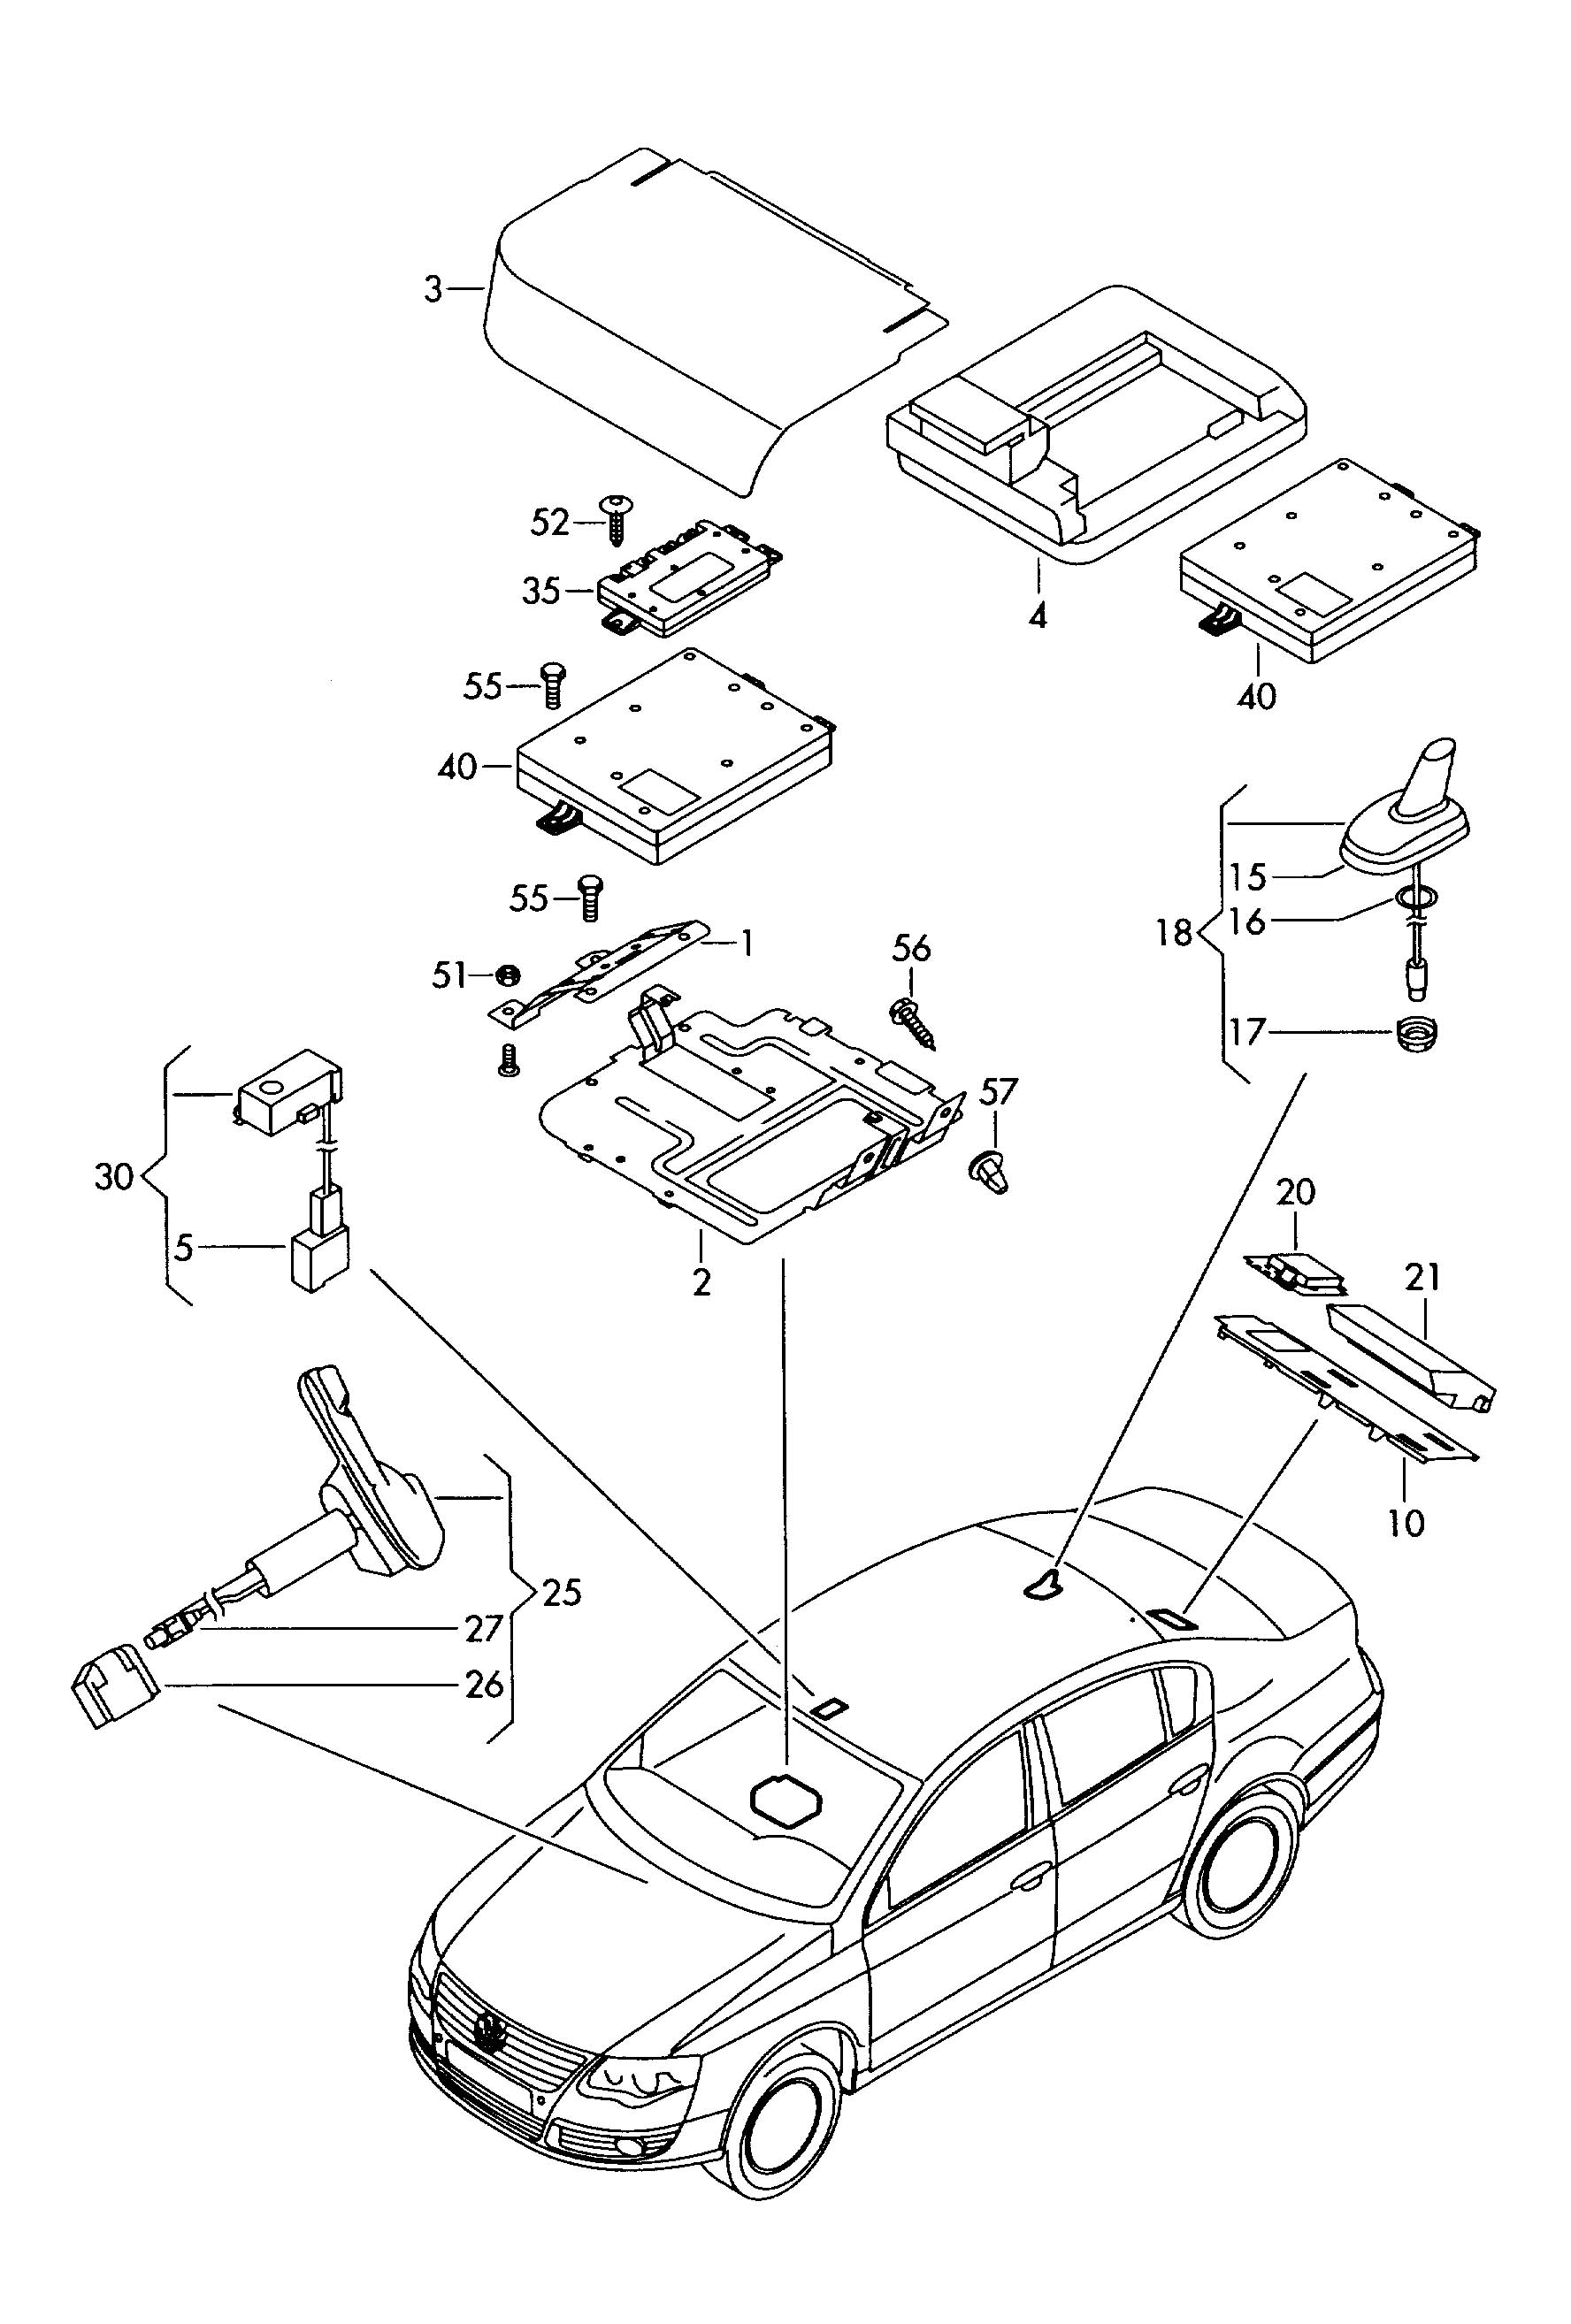 55 59 2nd Series Chevy Pickup Front End Parts also Vw 09g Transmission Diagram also 221280600625 besides 1Y0863459B B41 furthermore 1985 Yz 125 N Wiring Diagrams. on 62 vw beetle parts